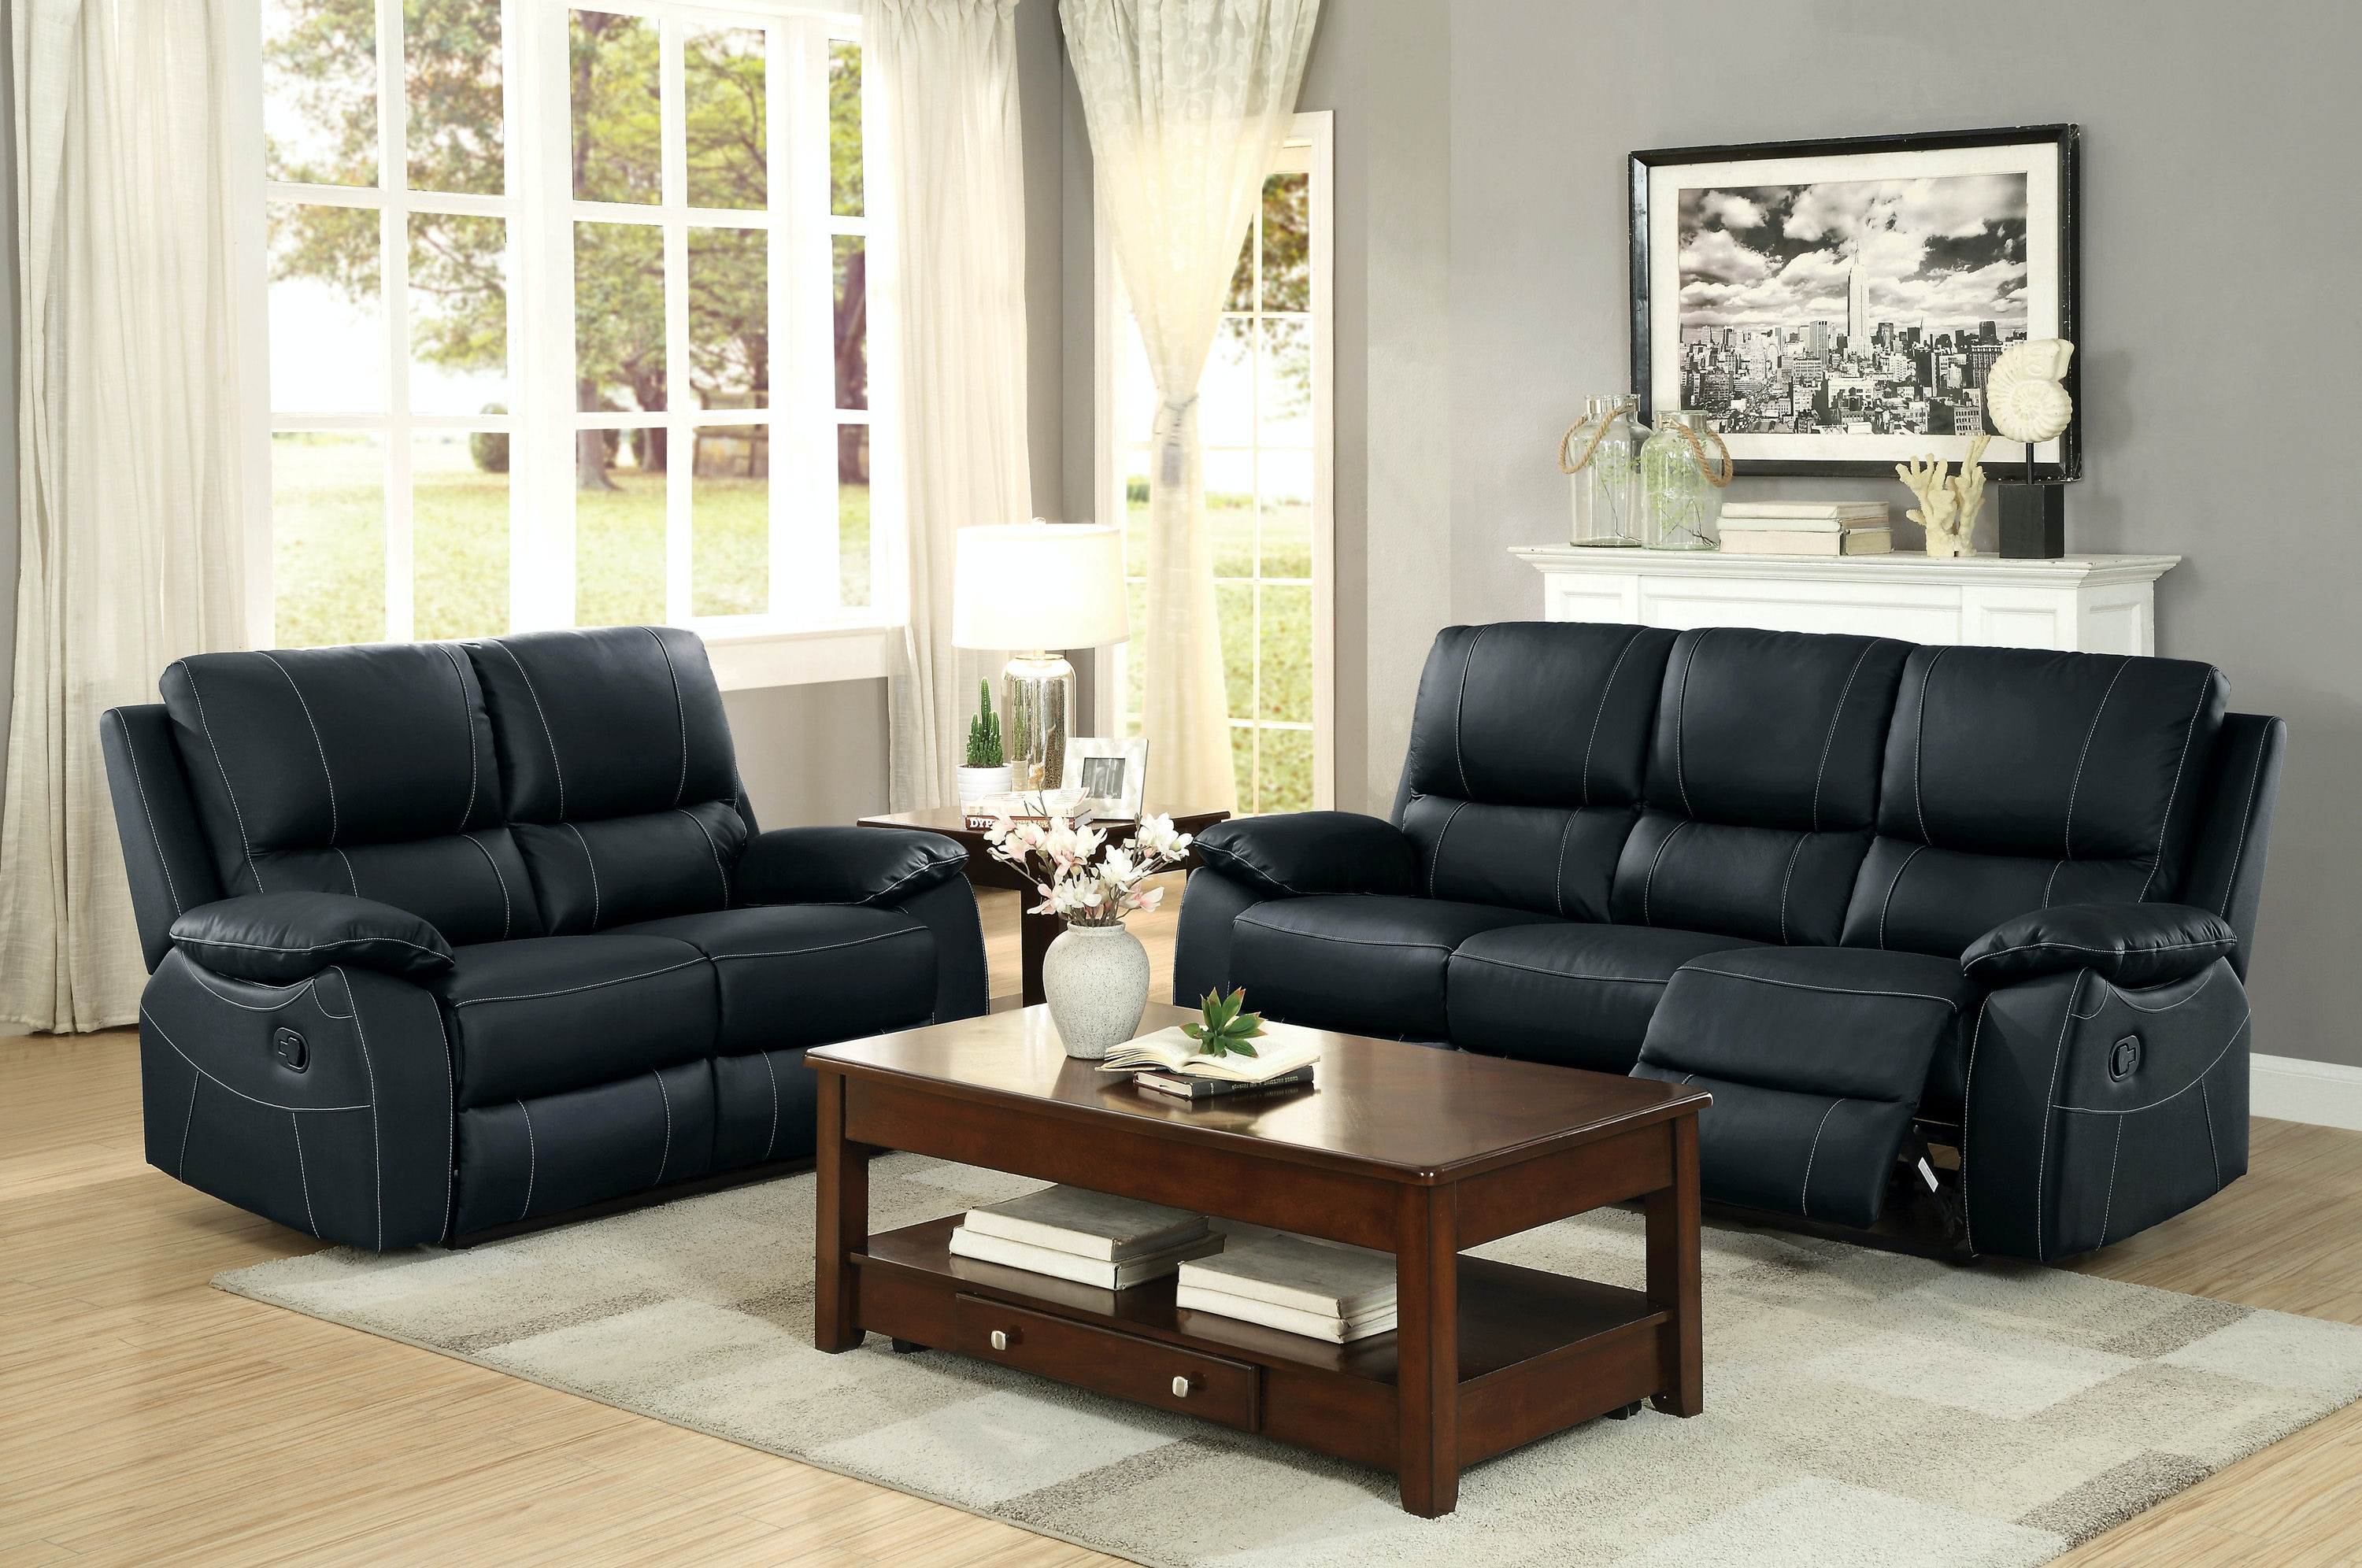 Living Room Sets Cleveland Ohio homelegance living room double rclnr sofa 8325blk-3 - kaplans